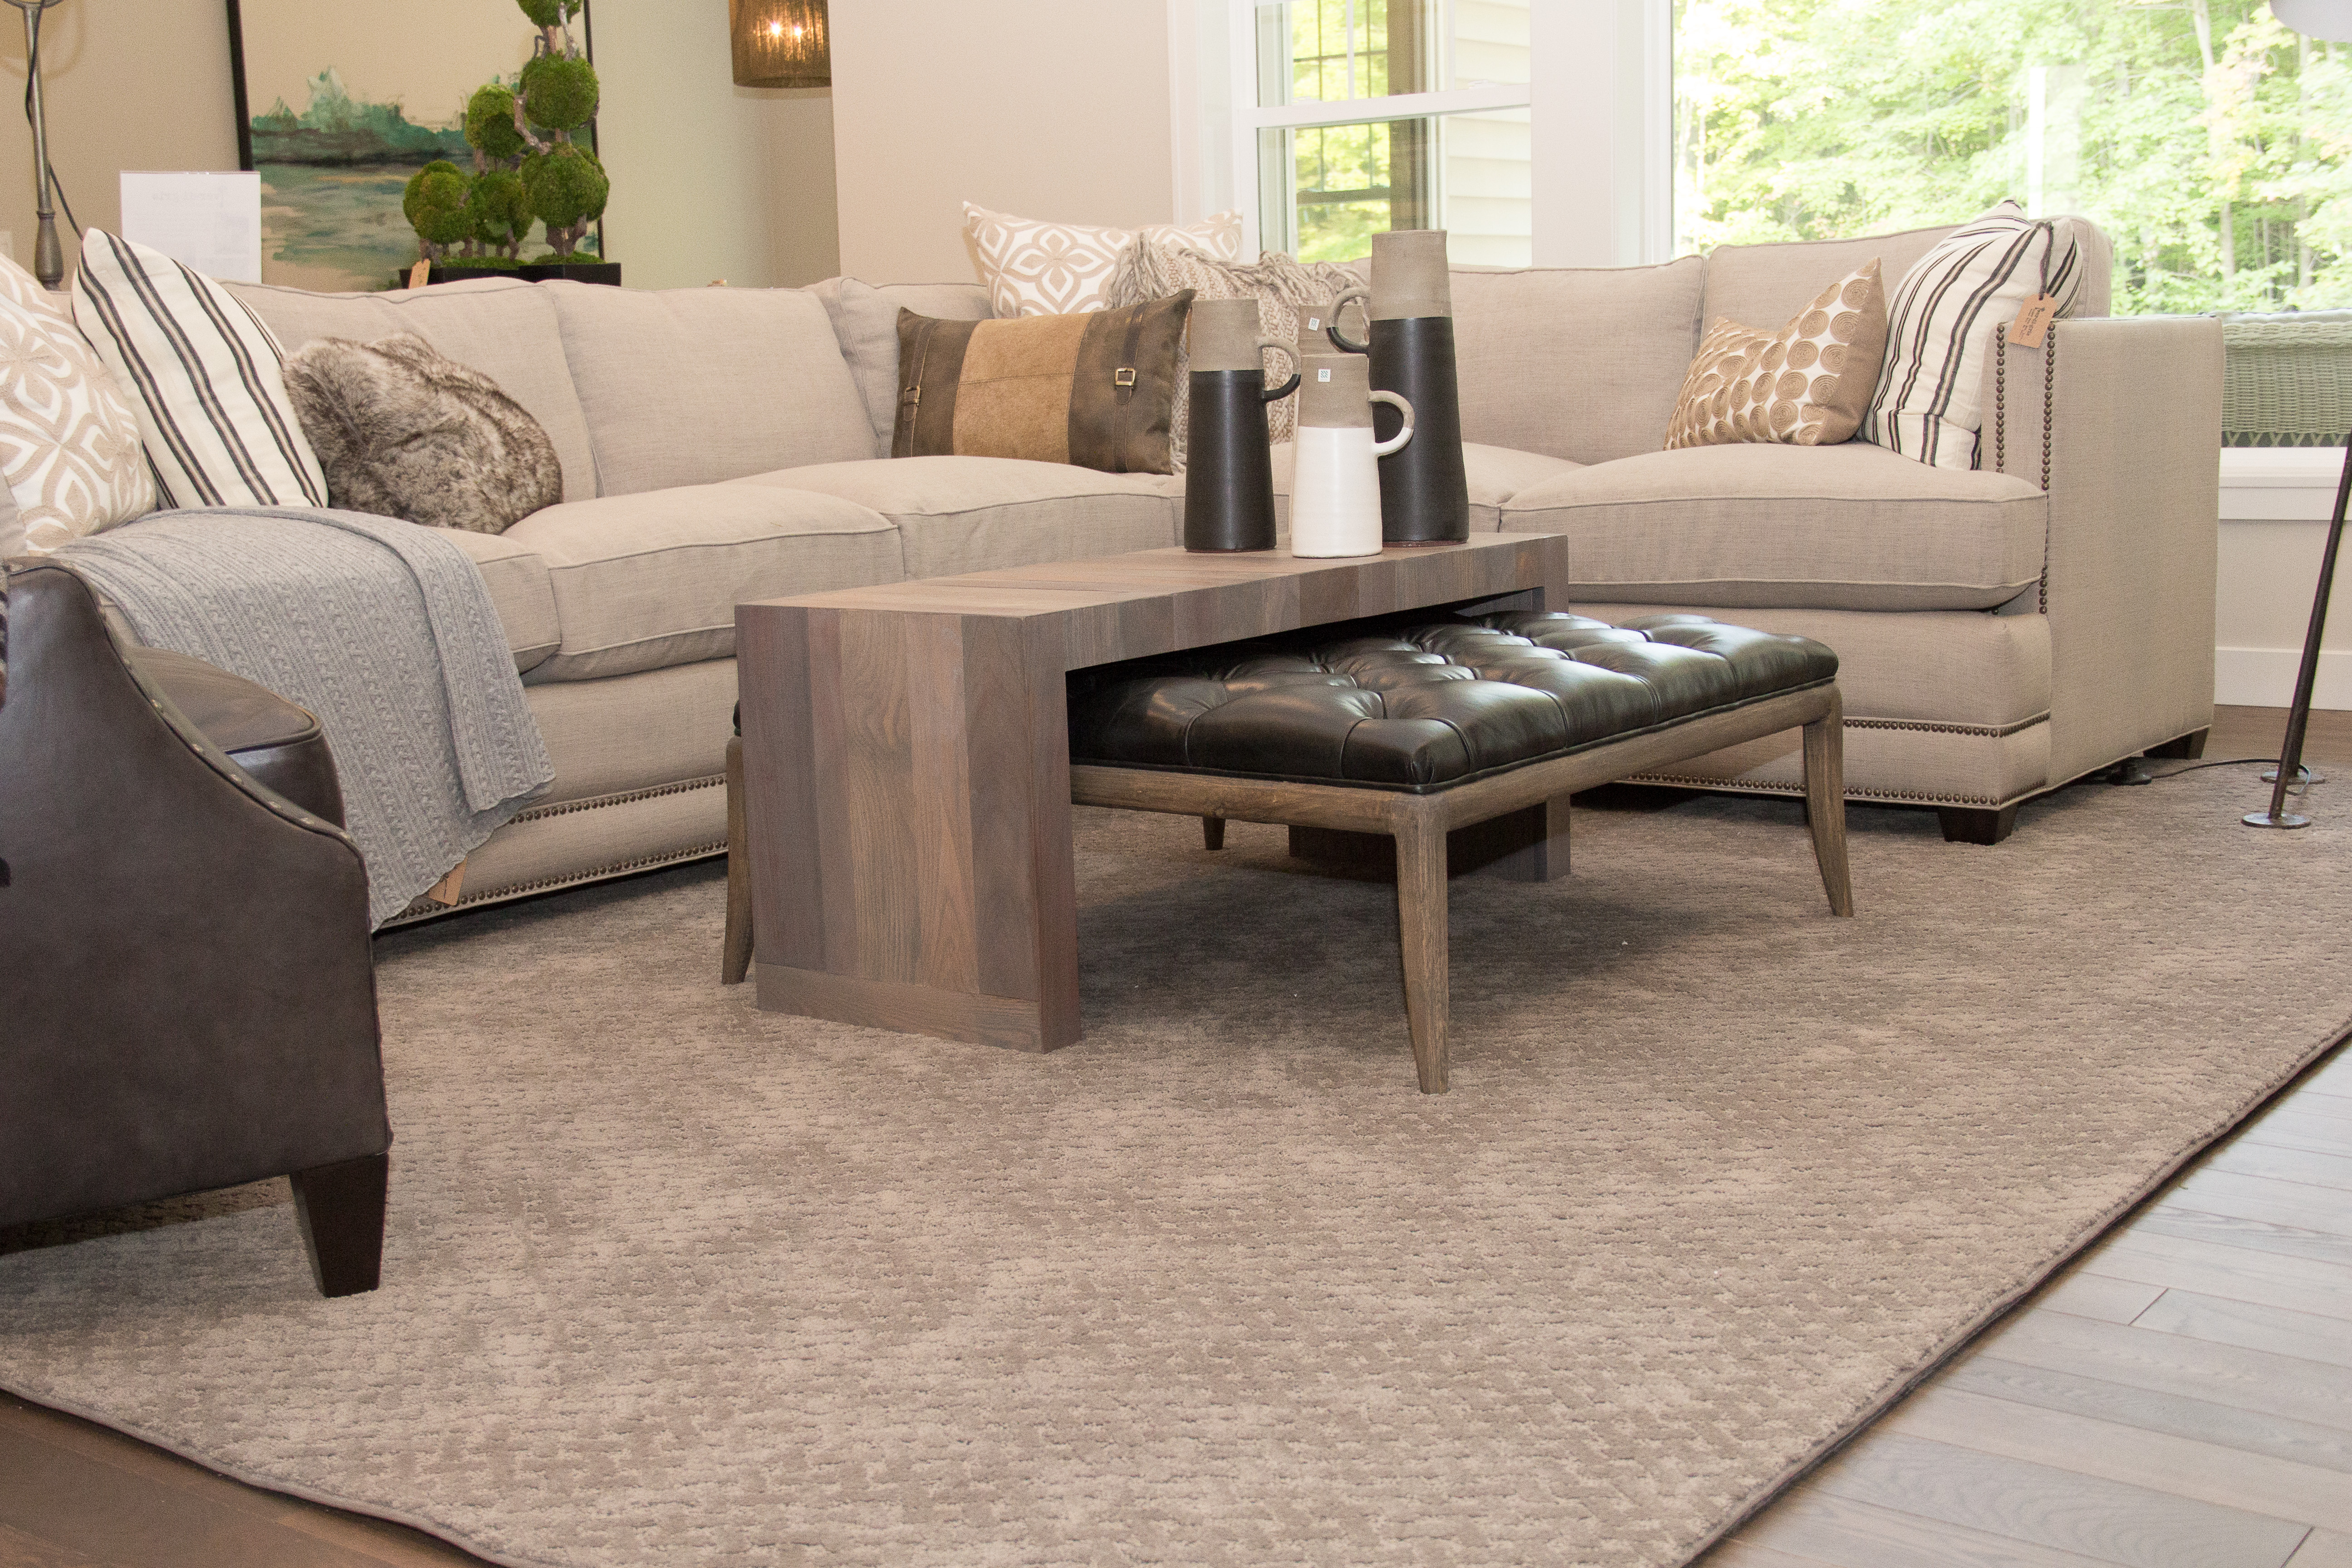 Area Rug Design H J Martin And Son